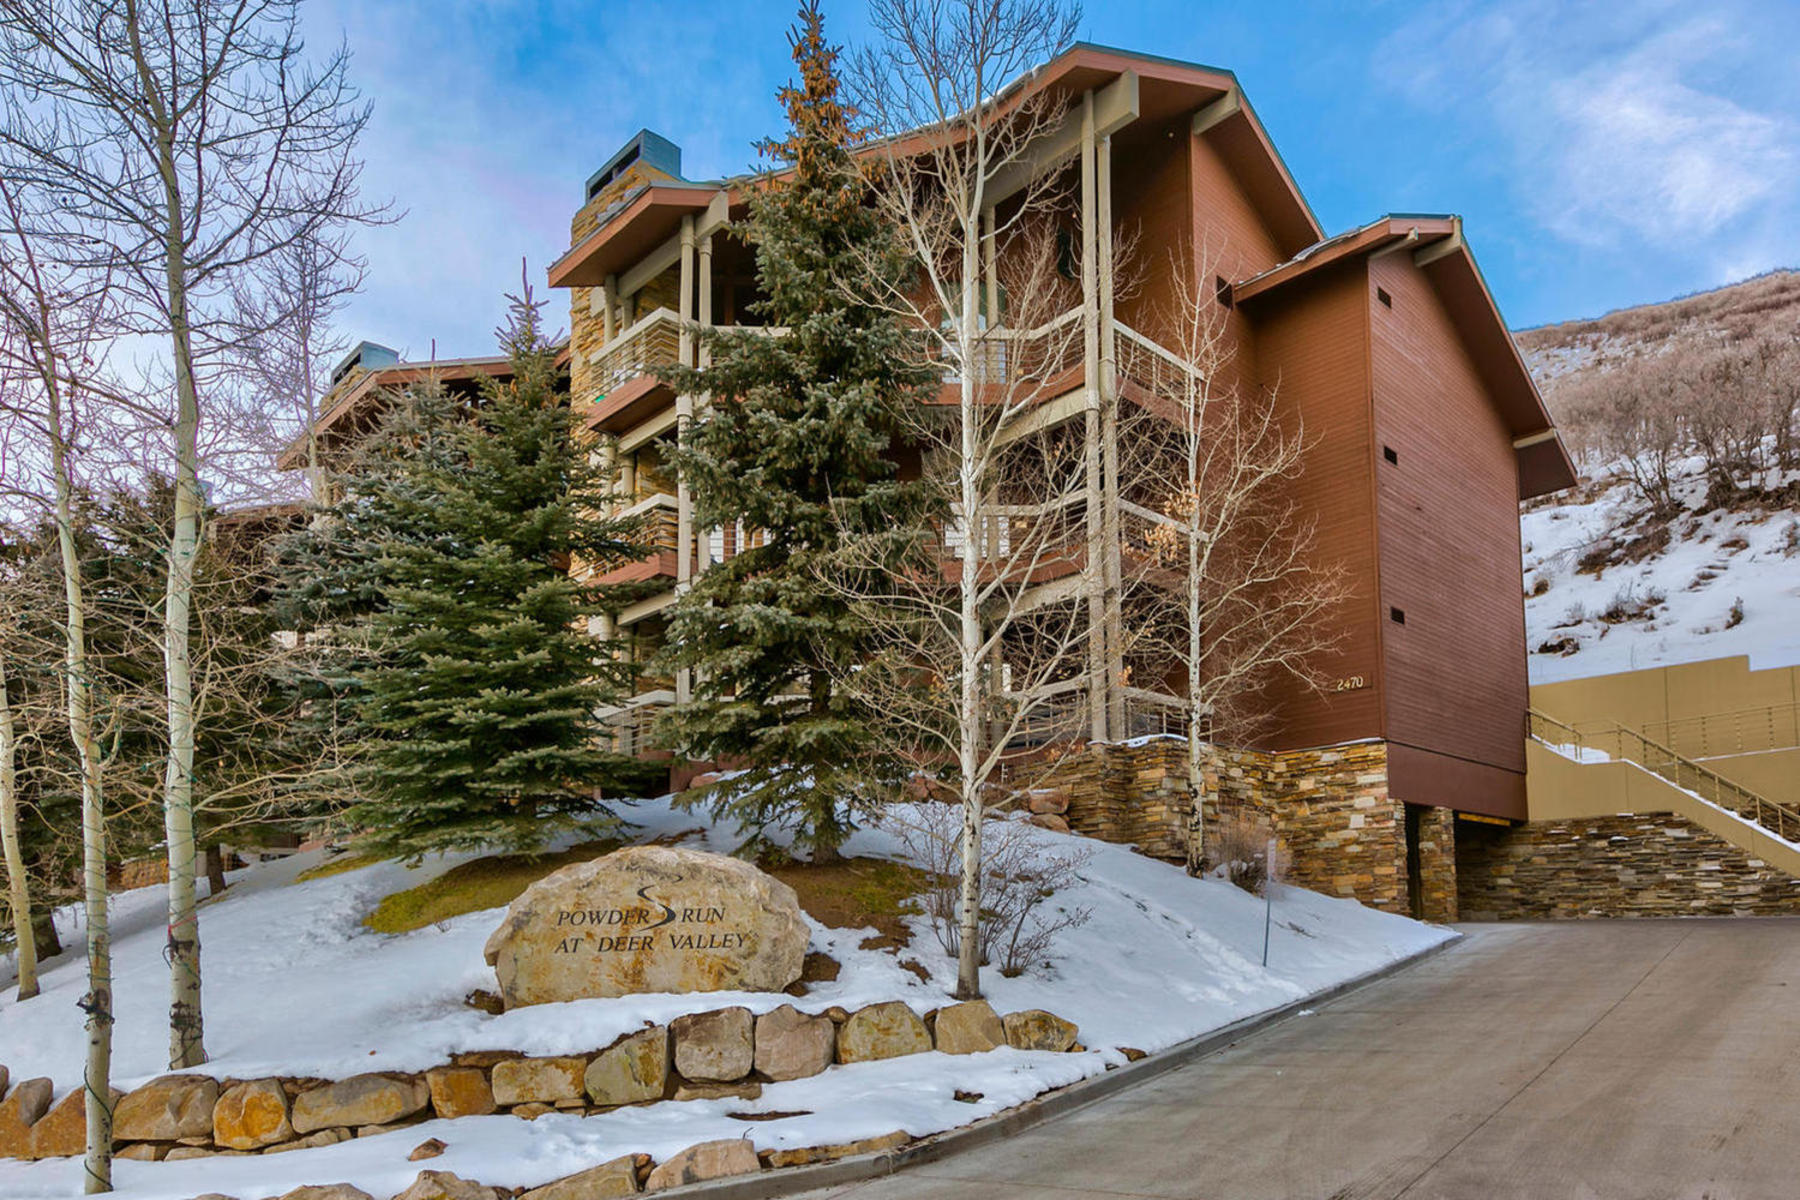 Condominium for Sale at Fully Furnished and Updated Steps from the Deer Valley Base 2470 E Deer Valley Dr #B-11 Park City, Utah 84060 United States